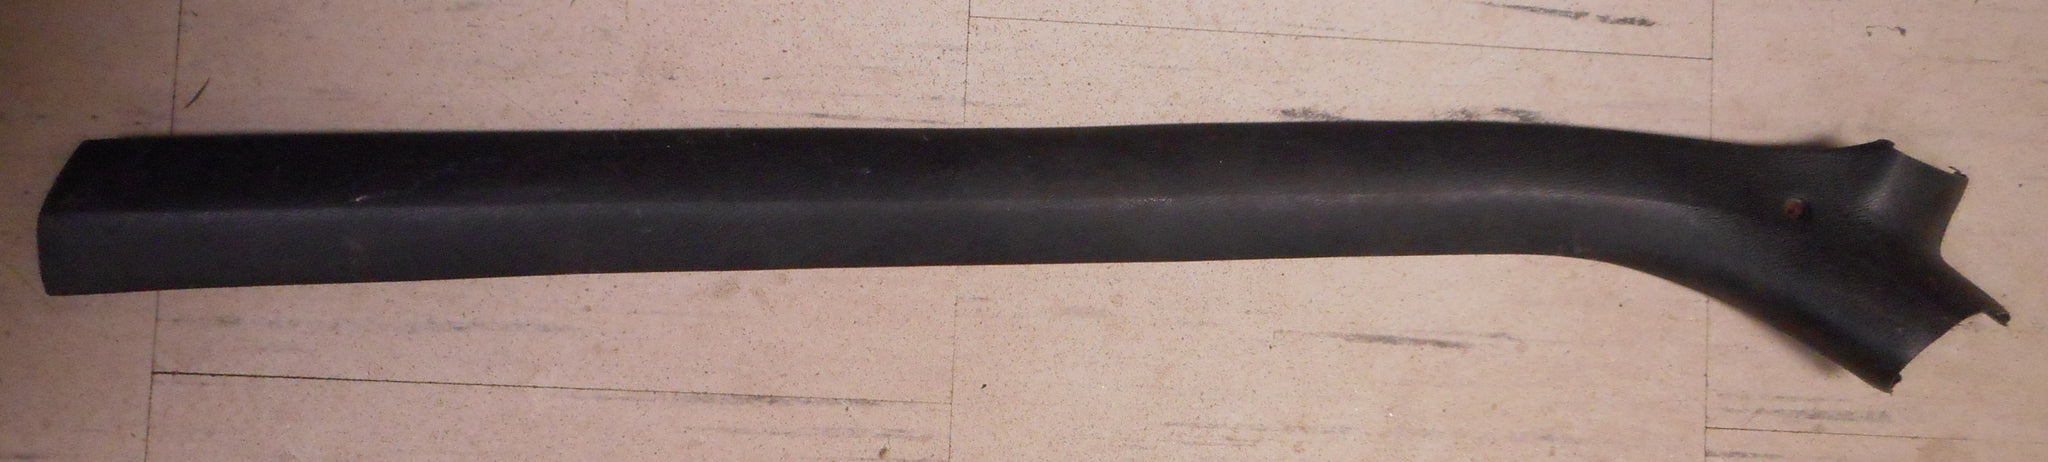 HEADLINER SIDE PLASTIC TRIM ,LEFT,USED 73-77 A-BODY